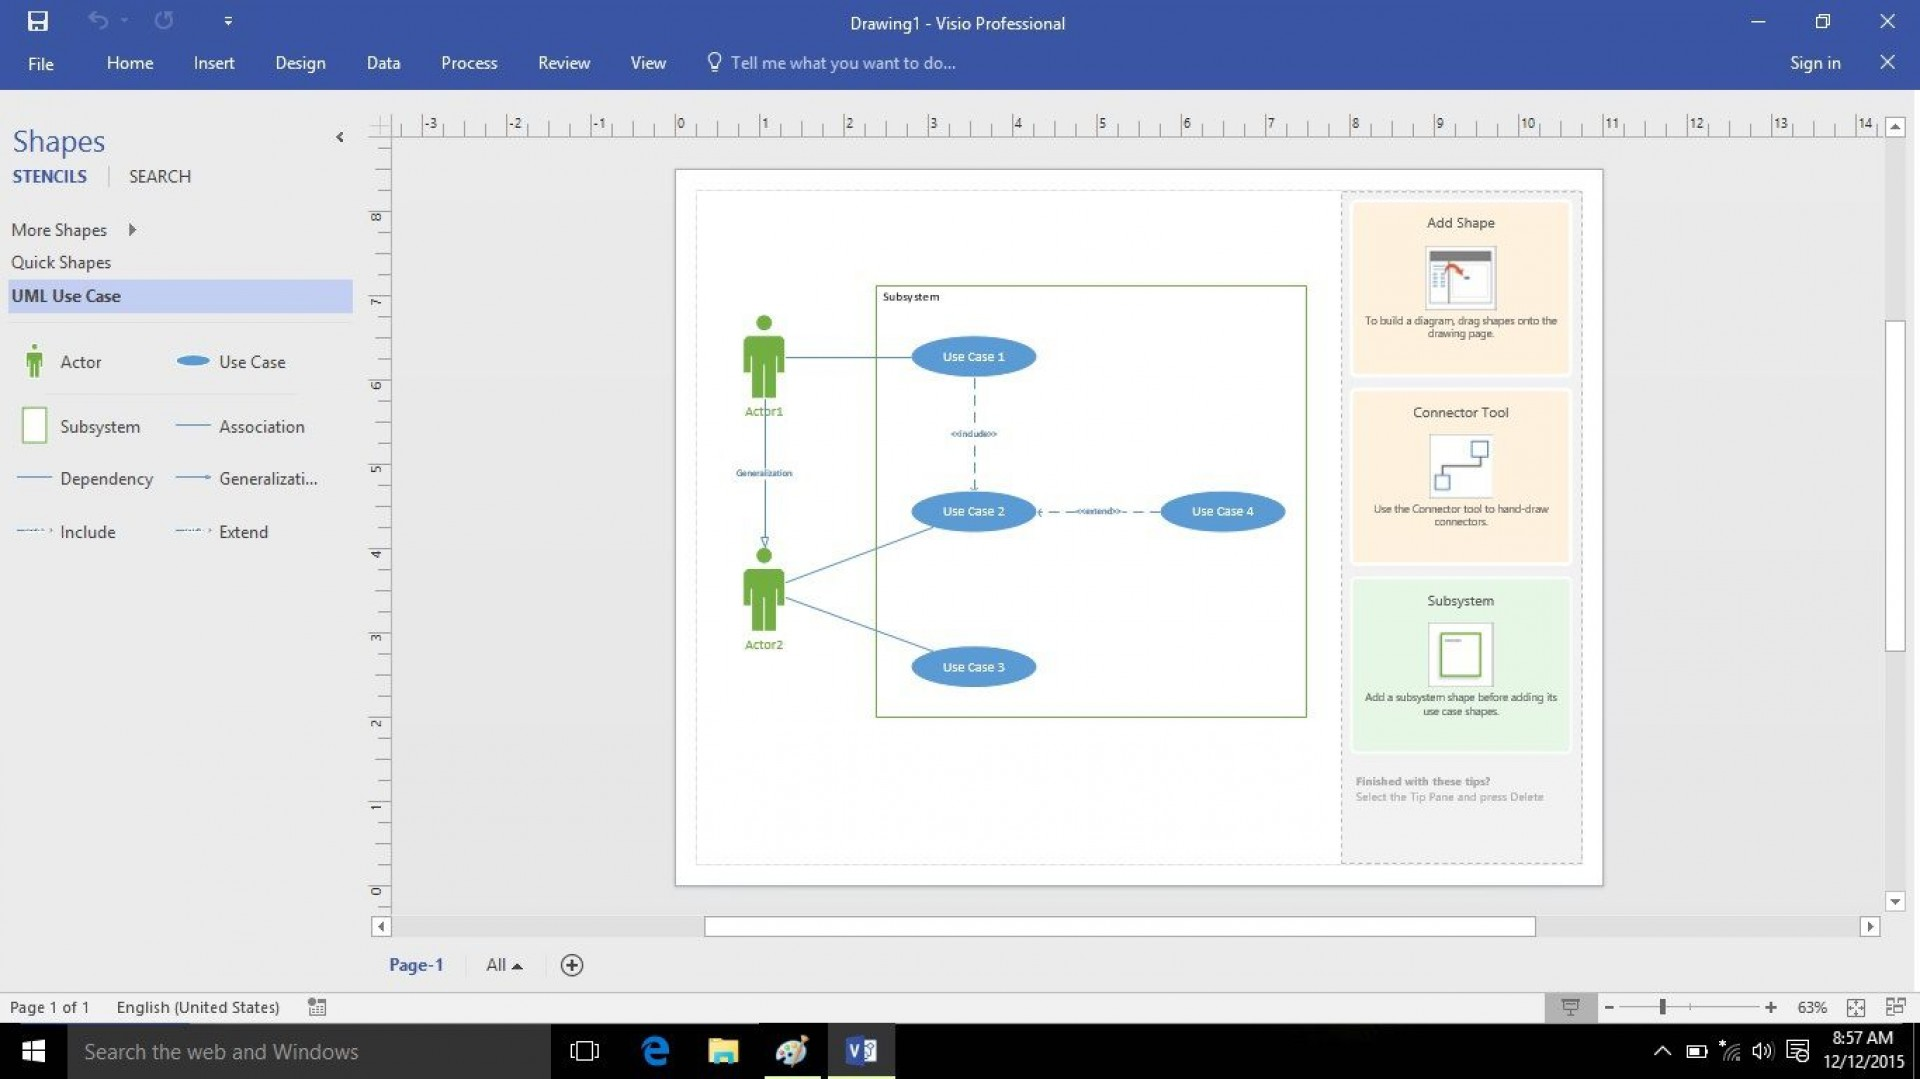 010 Fascinating How To Draw Use Case Diagram In Microsoft Word 2007 Highest Clarity 1920